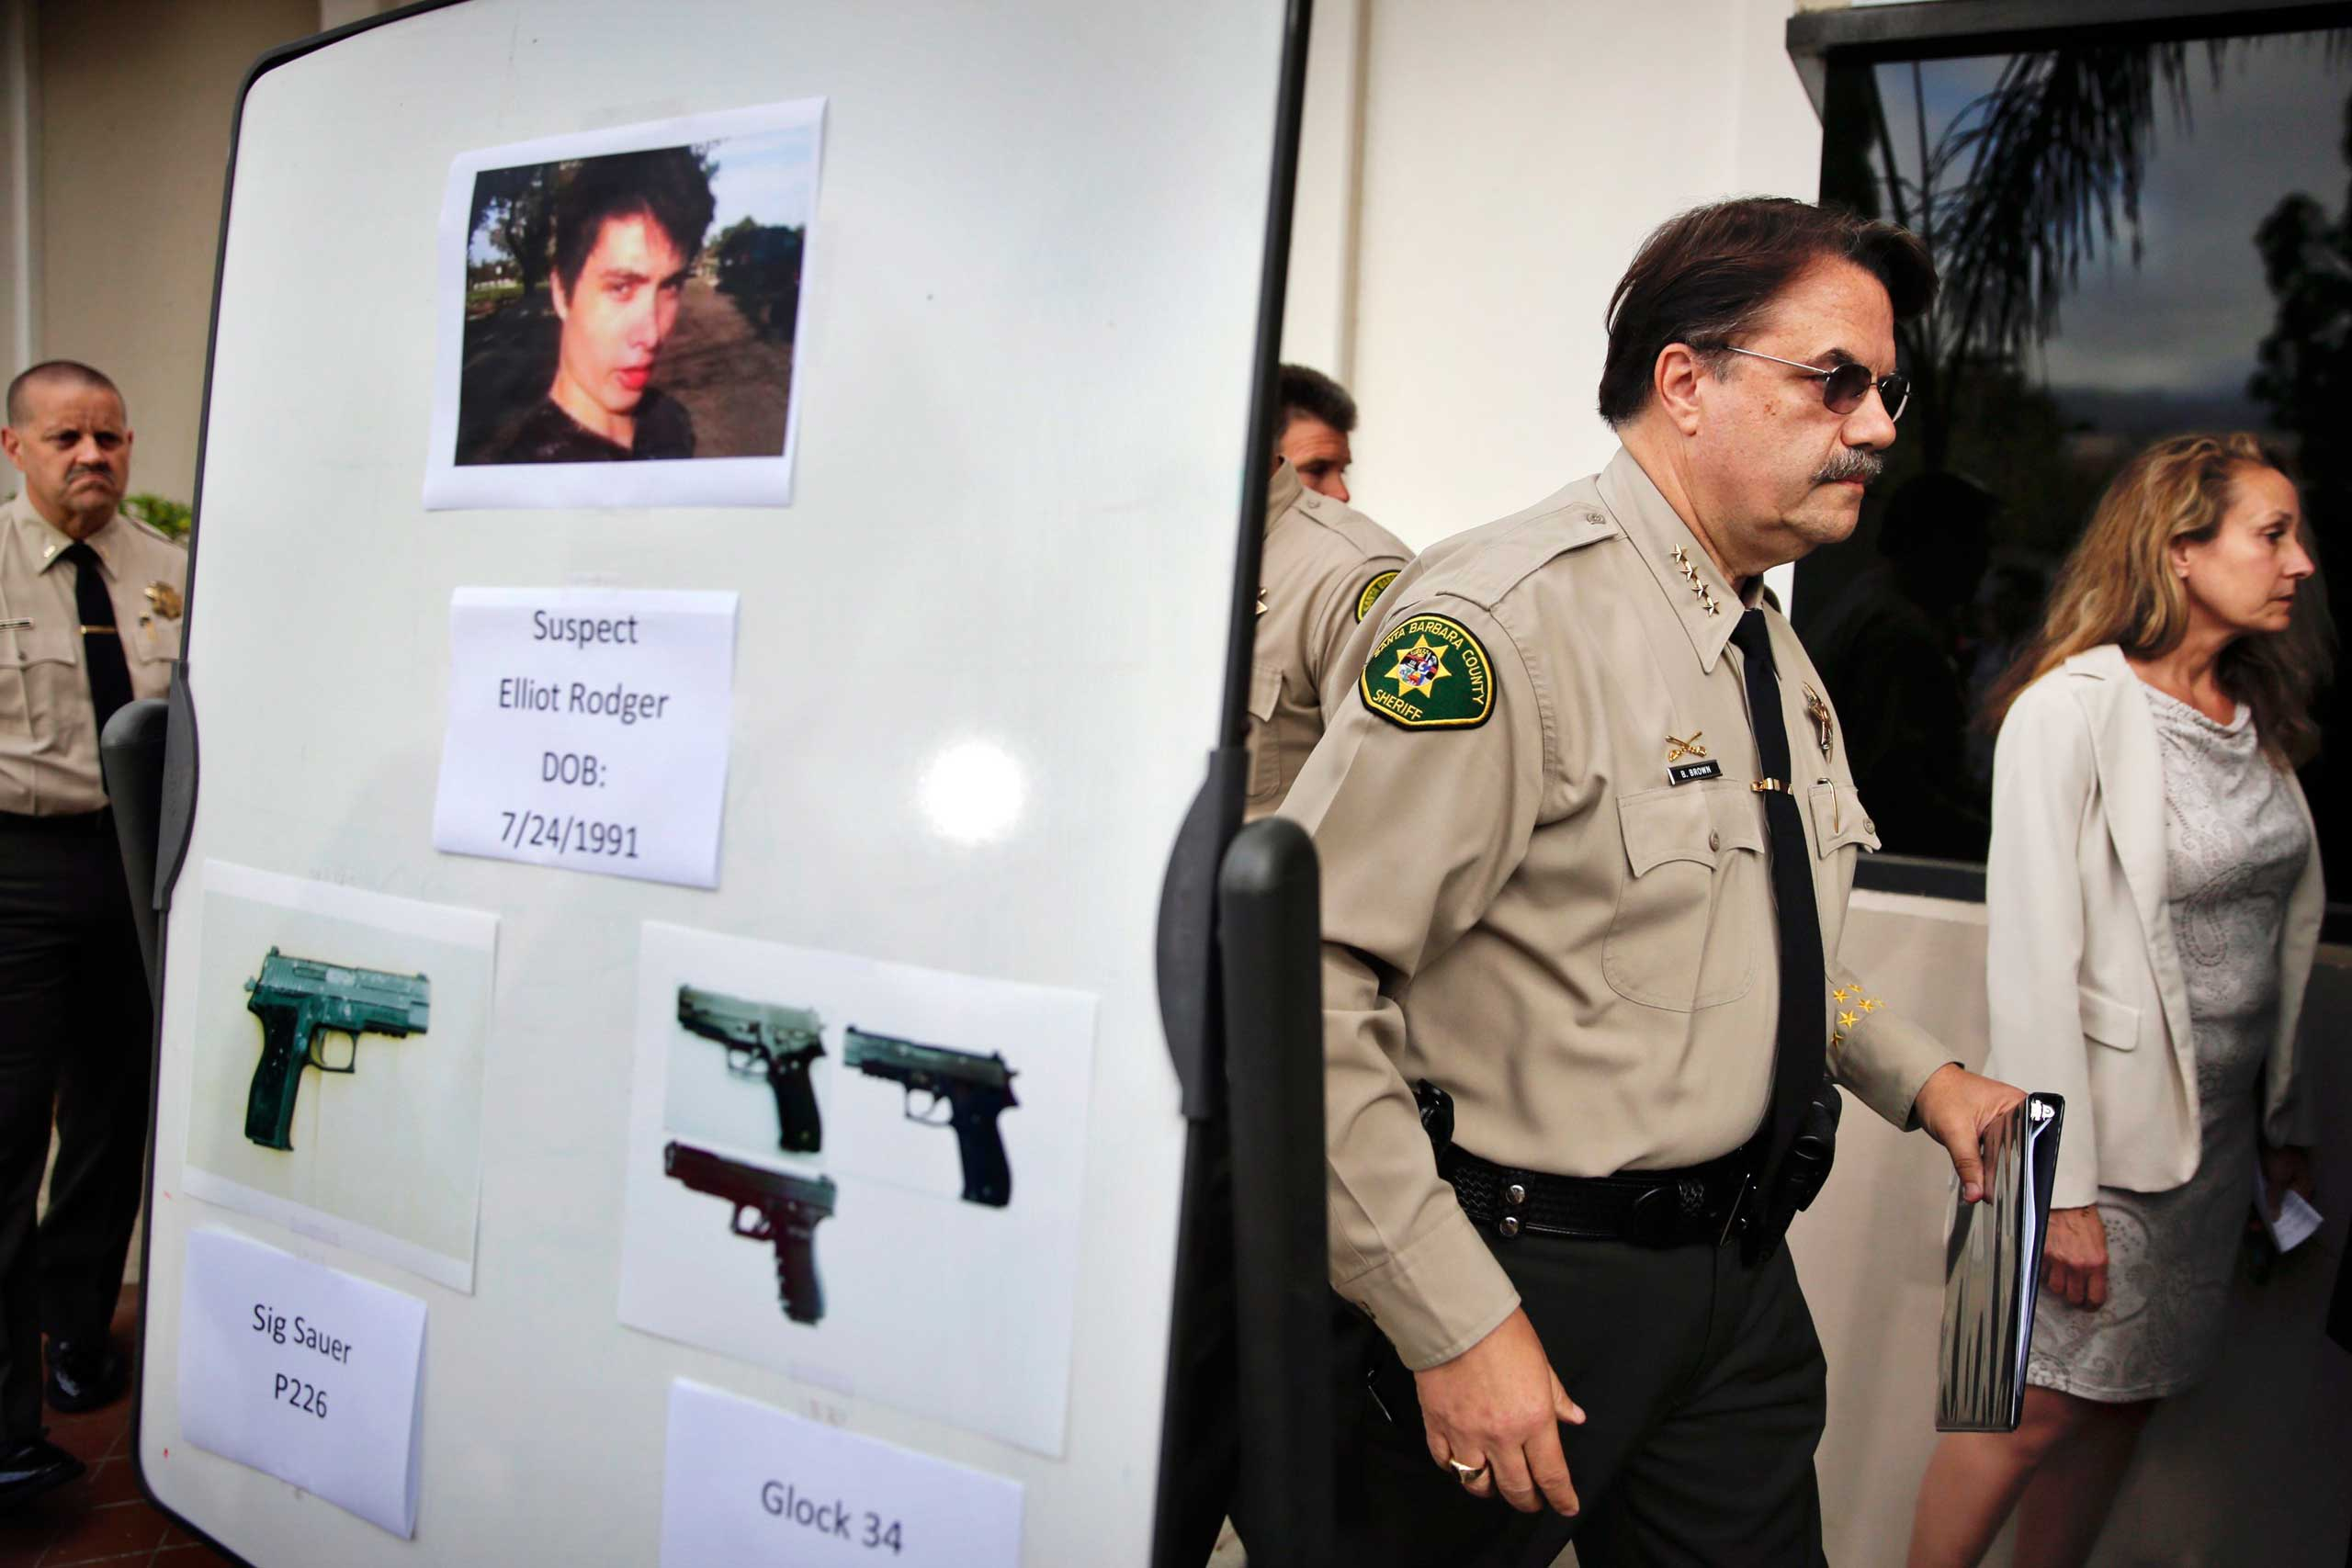 Santa Barbara County Sheriff Bill Brown, right, walks past a board showing the photos of gunman Elliot Rodger and the weapons he used in the mass shooting that took place in Isla Vista, Calif., after a news conference in Santa Barbara, Calif. on May 24, 2014.